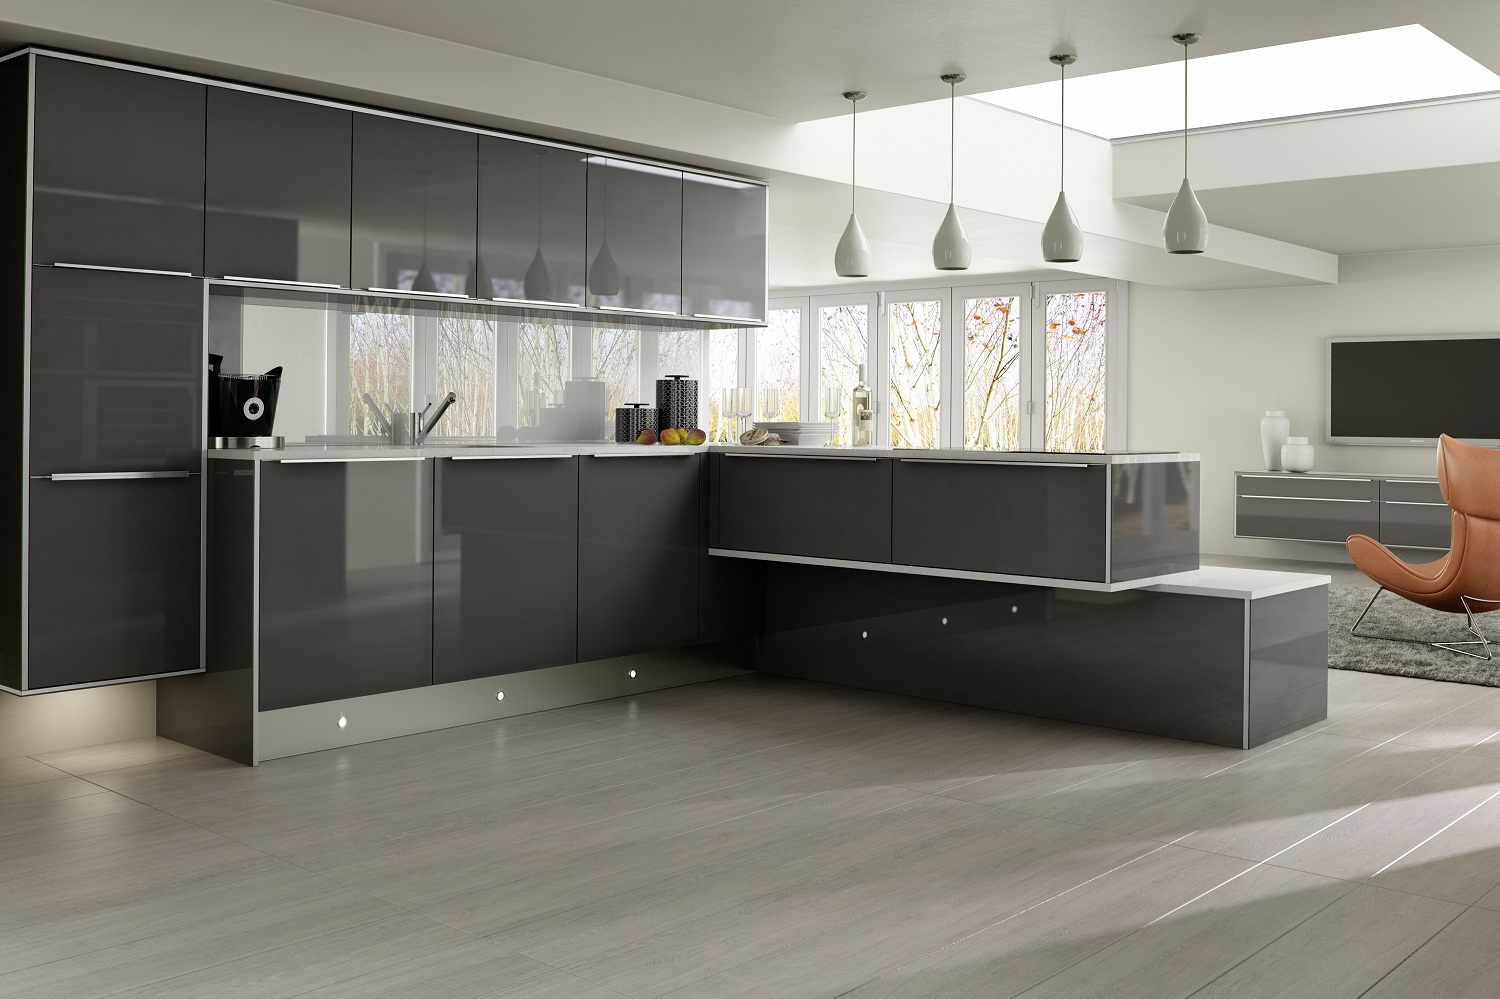 Discount Cabinets Fitted Kitchen Service London | Fitted Kitchens Middlesex